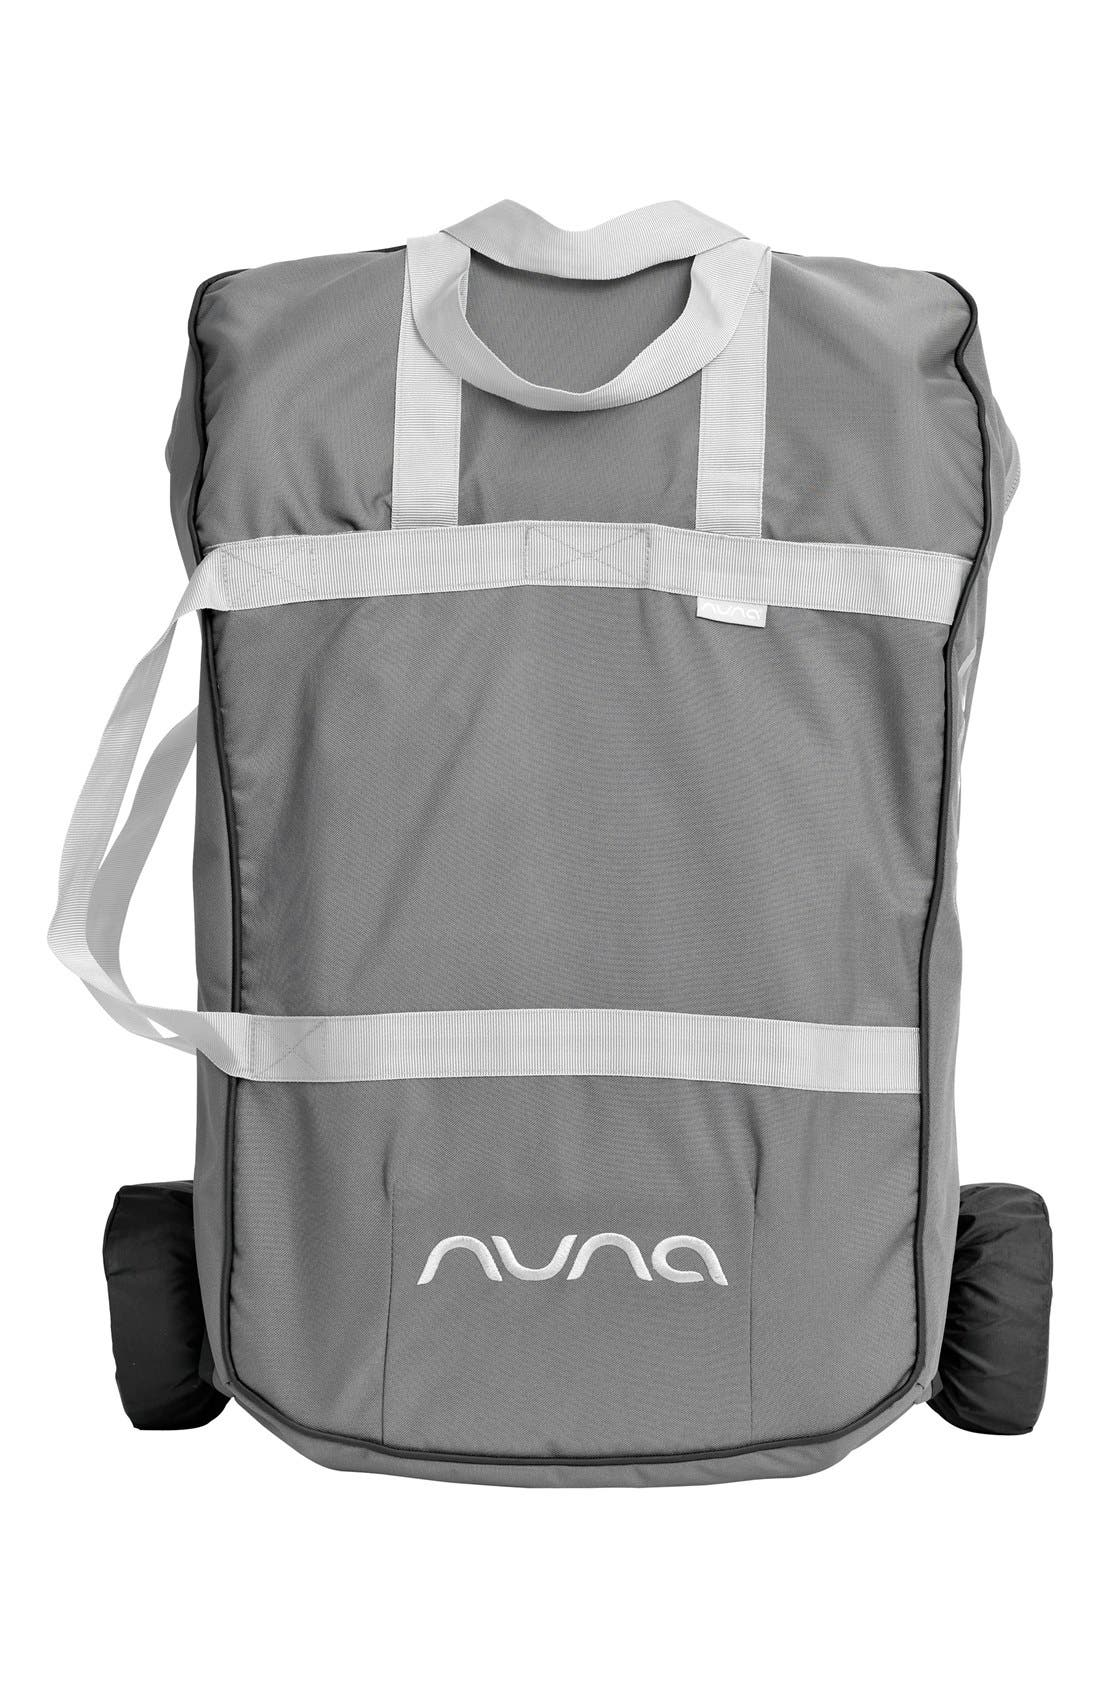 Alternate Image 1 Selected - nuna 'PEPP' Stroller Transport Bag